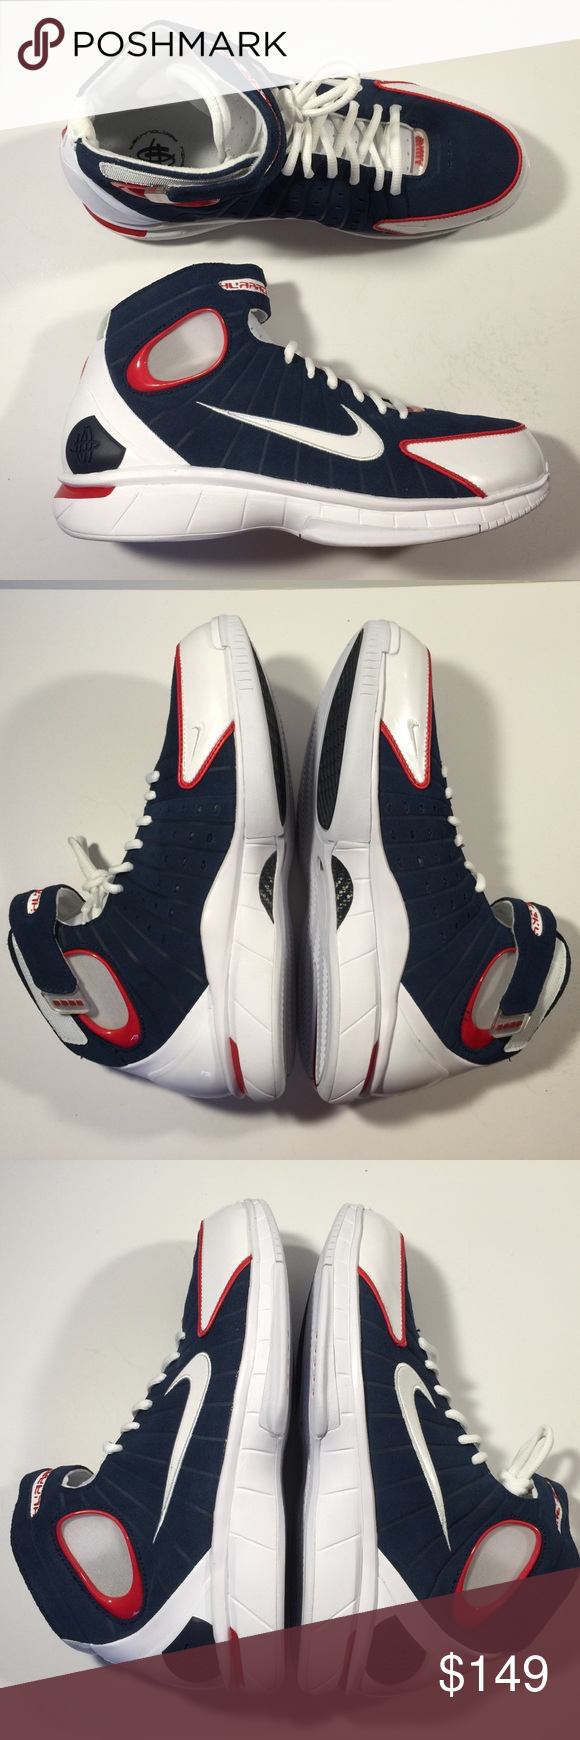 online store 665f0 723f3 Nike huarache 2k4 basketball shoes mens size 10 brand new with original box  mens size 10 olympic colorway Shoes Athletic Shoes